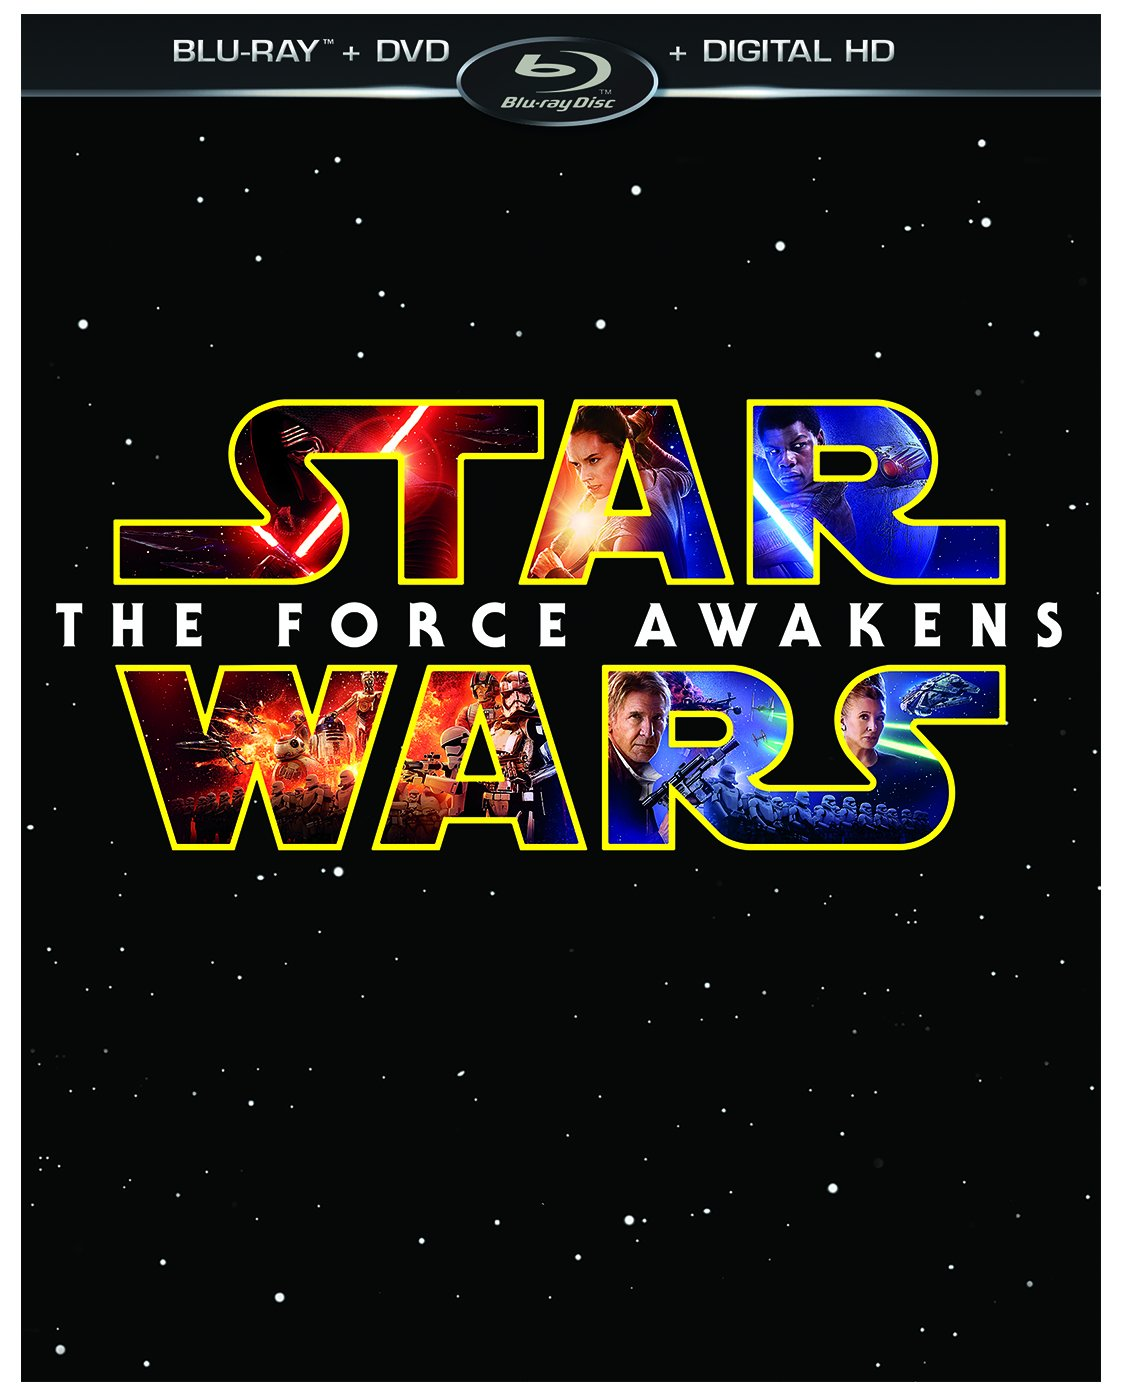 Blu-ray : Star Wars: Episode VII: The Force Awakens (With DVD, 3 Pack, Digitally Mastered in HD, 3 Disc)